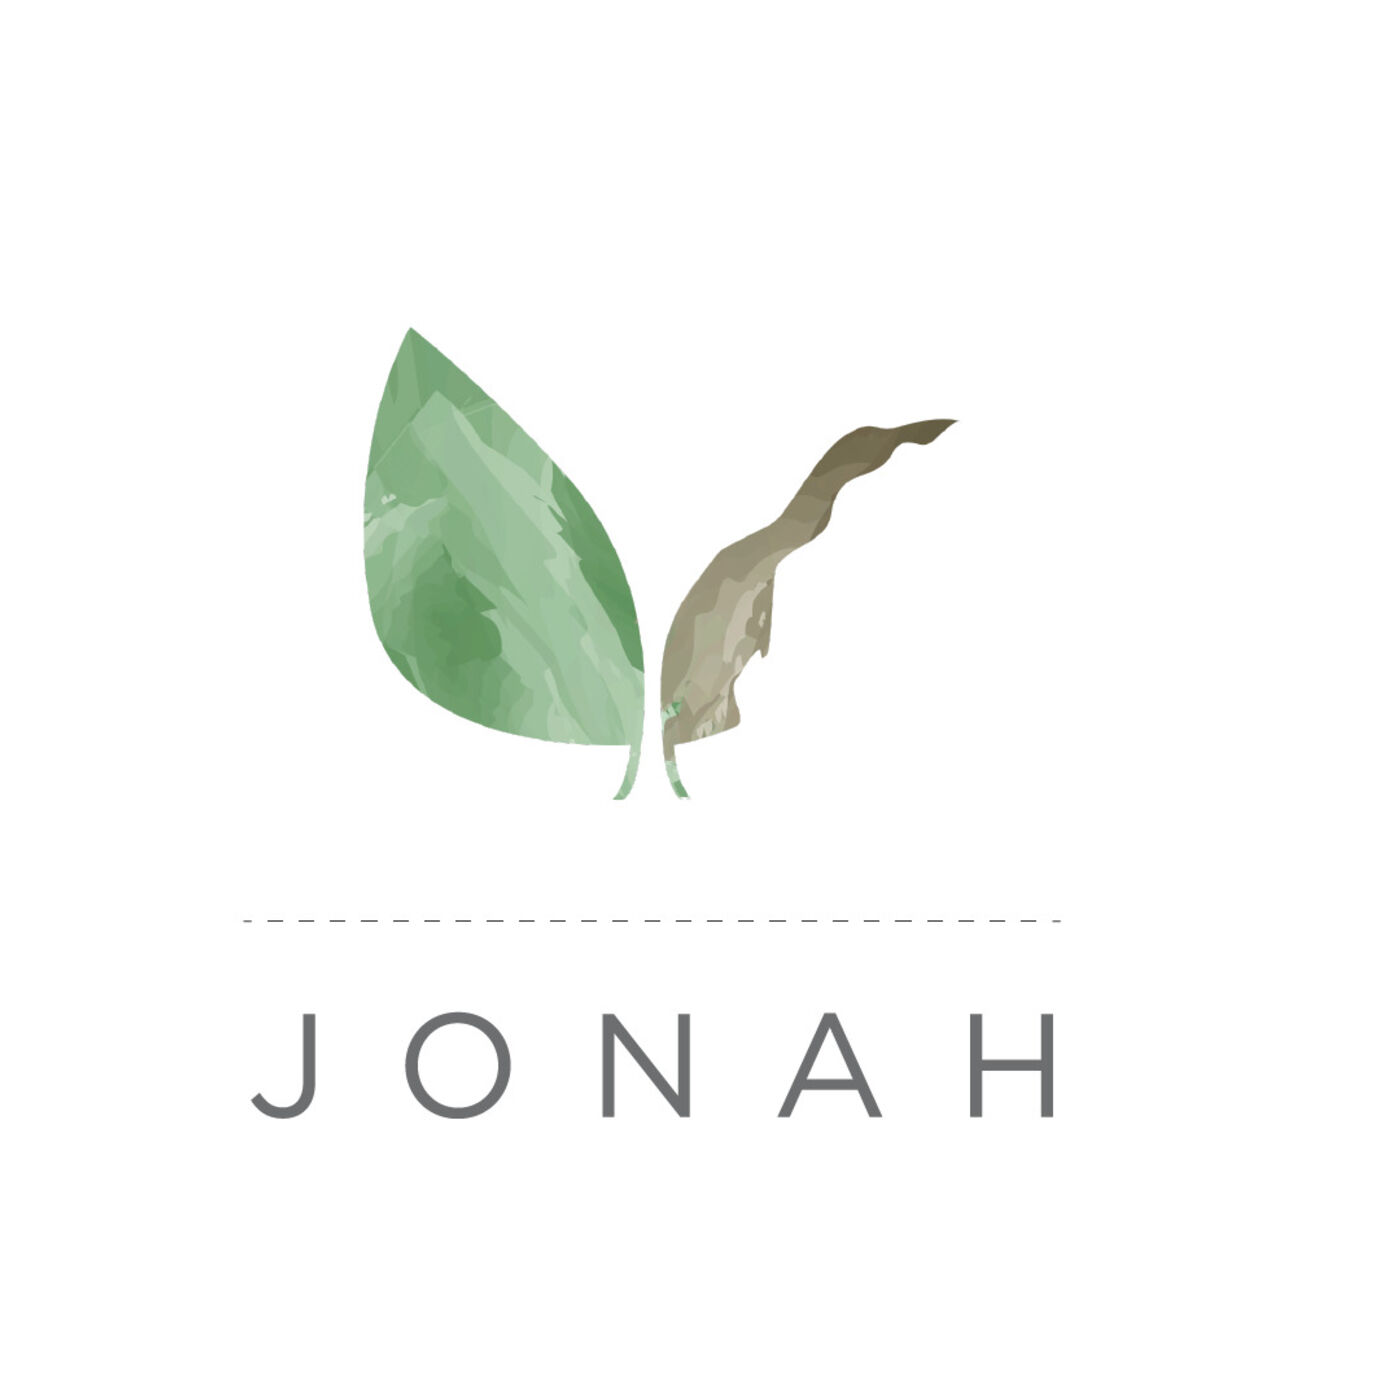 In Therapy with Jonah (Jonah, Part IV)